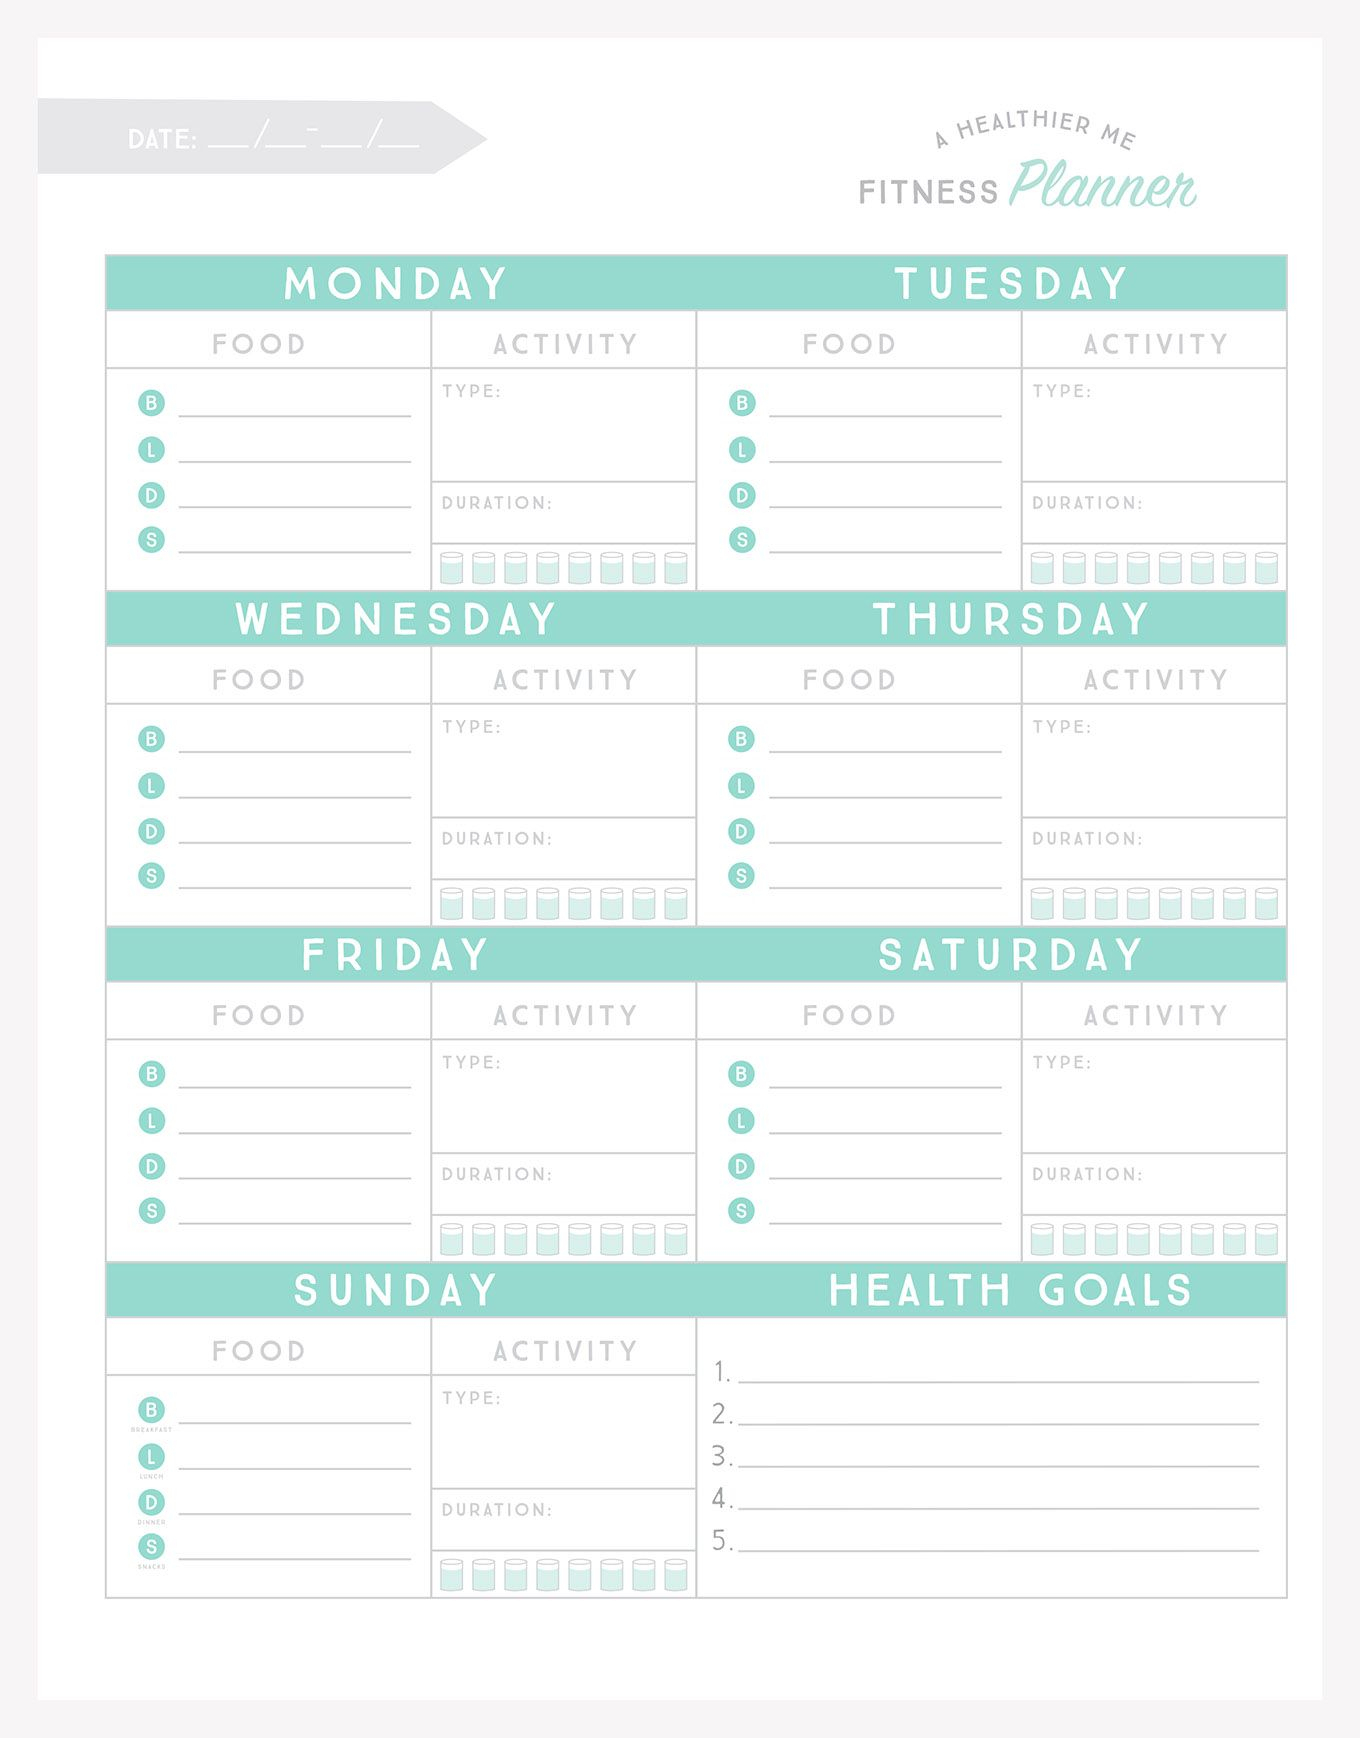 Free Printable Fitness Planner | All Time Favorite Printables - Free Printable Fitness Planner